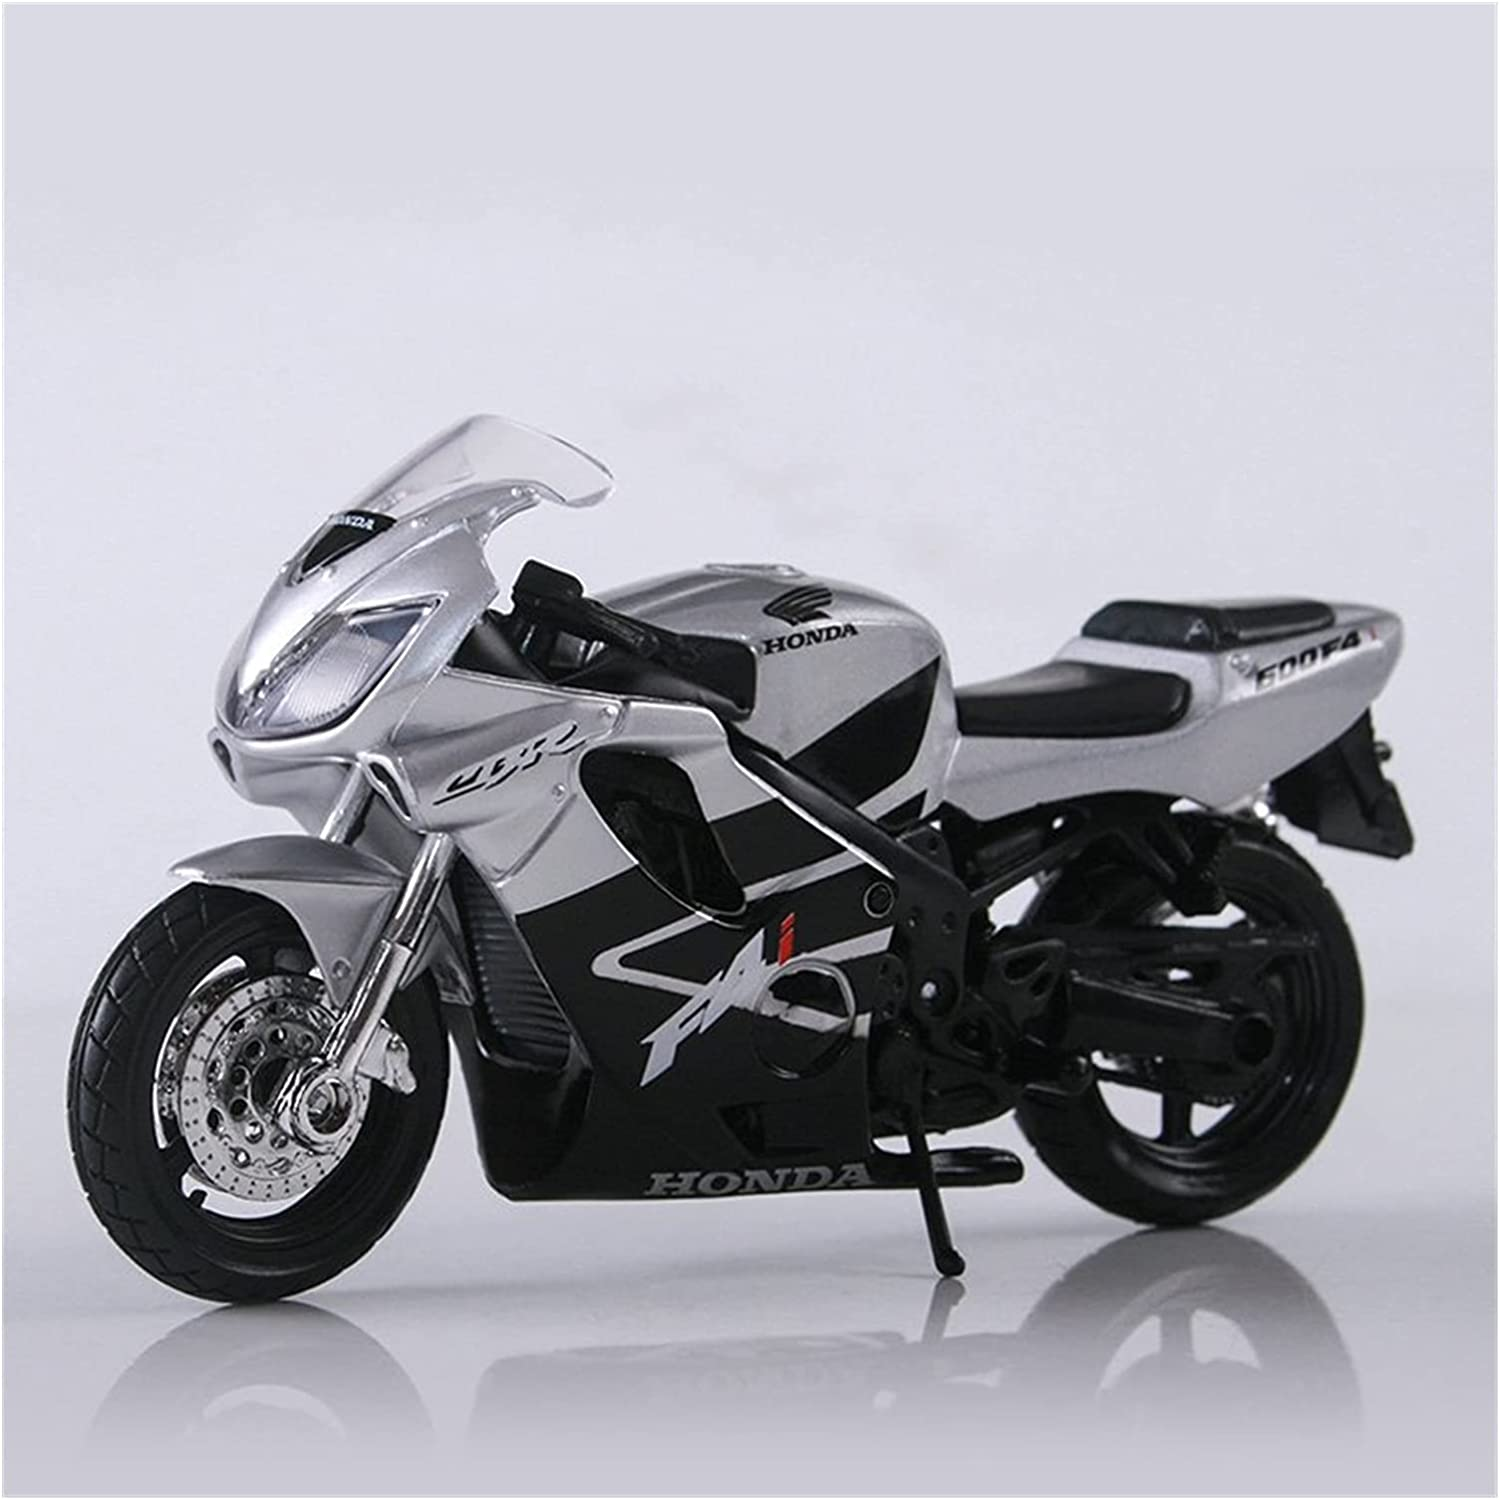 Motorcycle Alloy Decoration Toys 1:18 Honda 25% OFF CBR600F4i Max 47% OFF Simula for